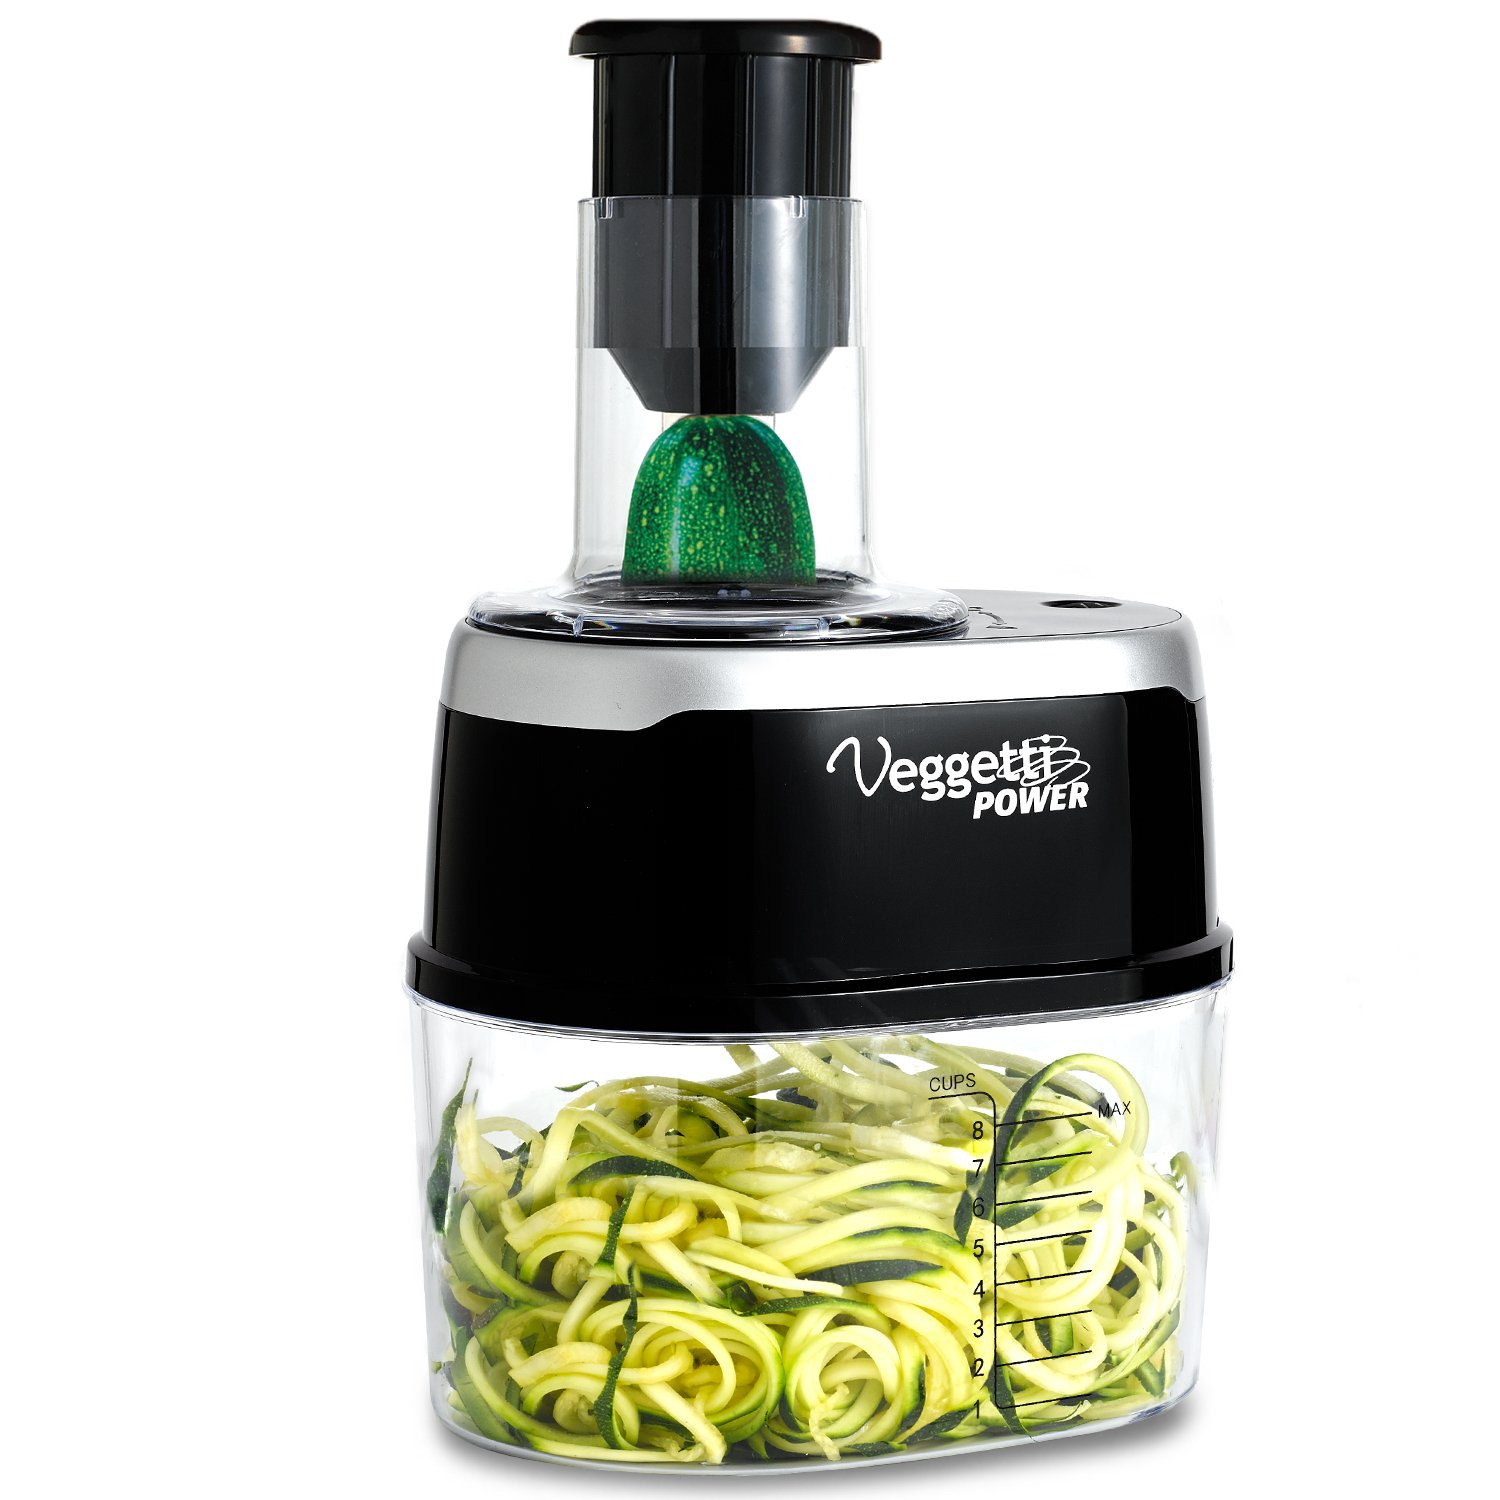 ONTEL Veggetti Power 4-in-1 Electric Spiralizer Turn Veggies Into Healthy Delicious Meals As Seen on TV